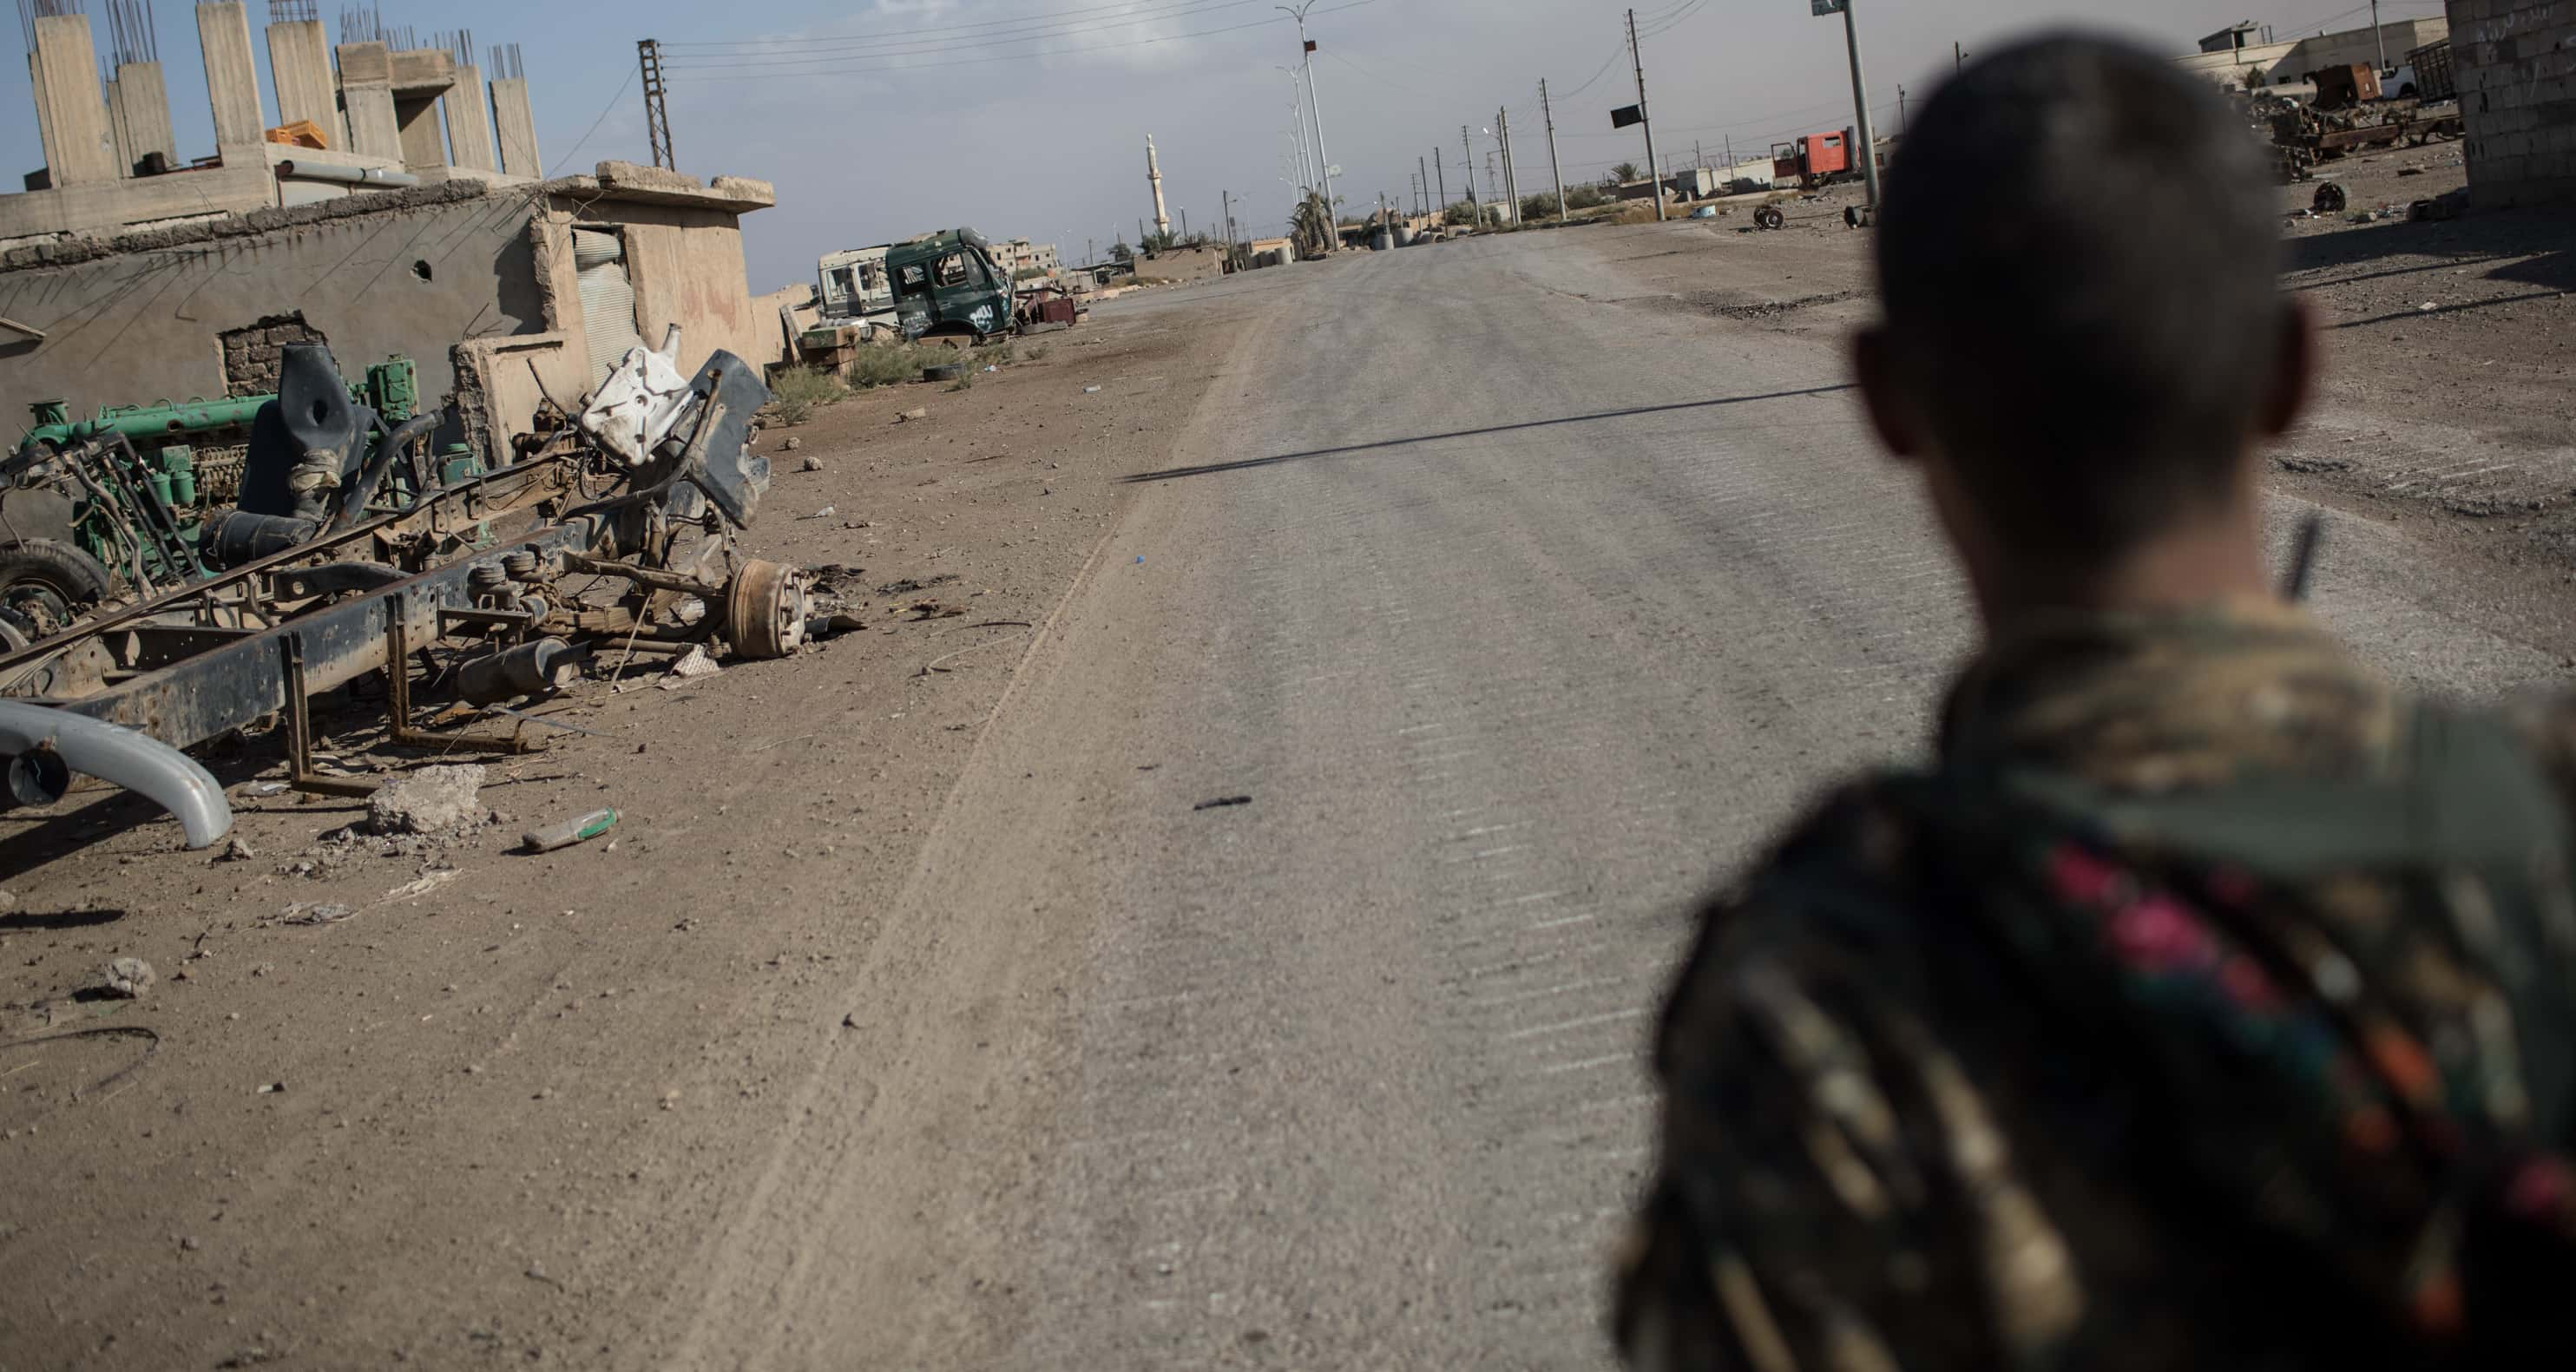 An empty street on the outskirts of Raqqa, October 2017 (Photo: Chris McGrath/Getty Images)